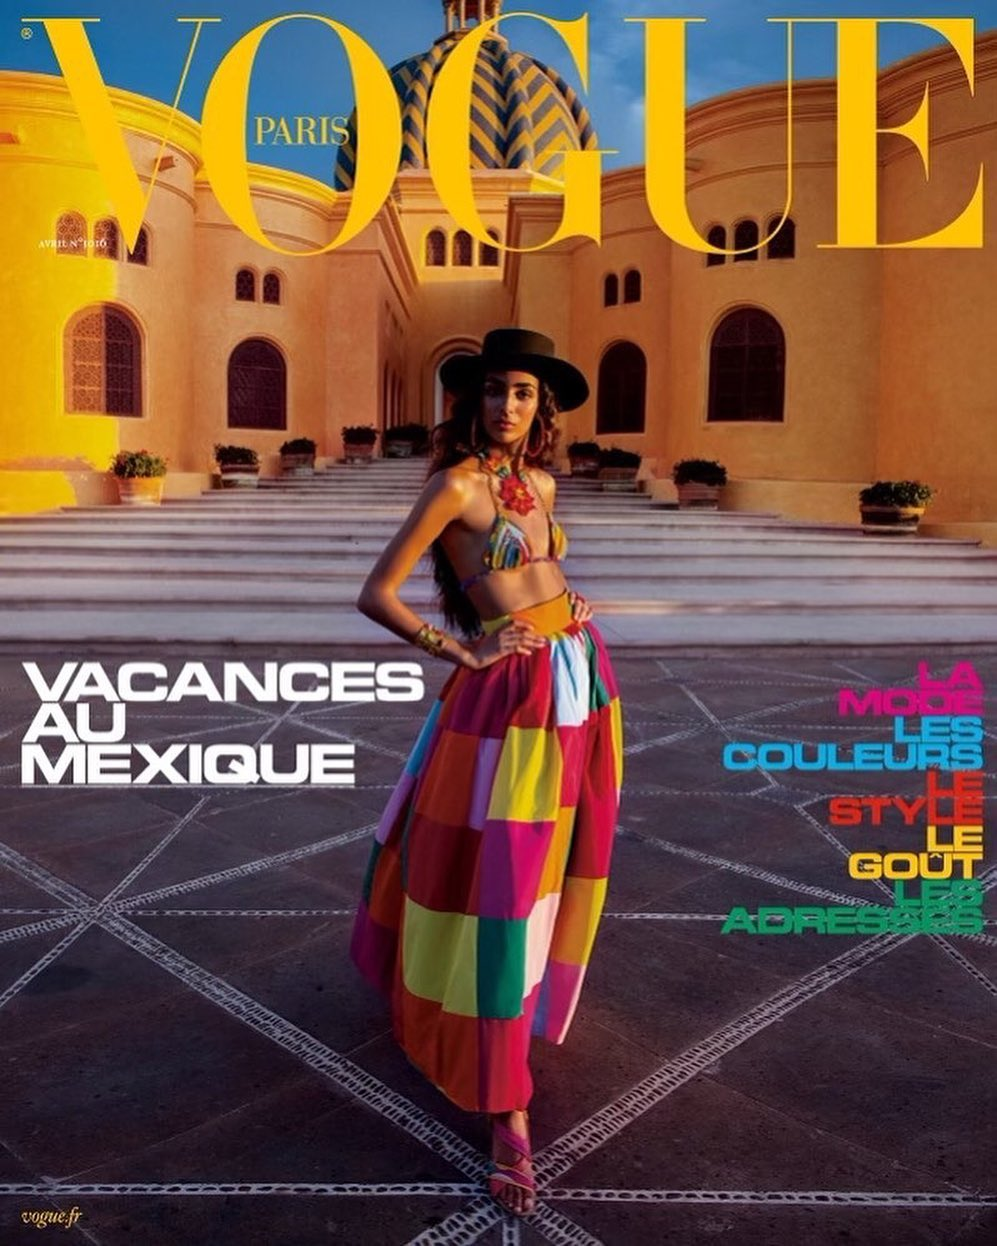 Nora Attal is whimsical for Vogue Paris April 2021